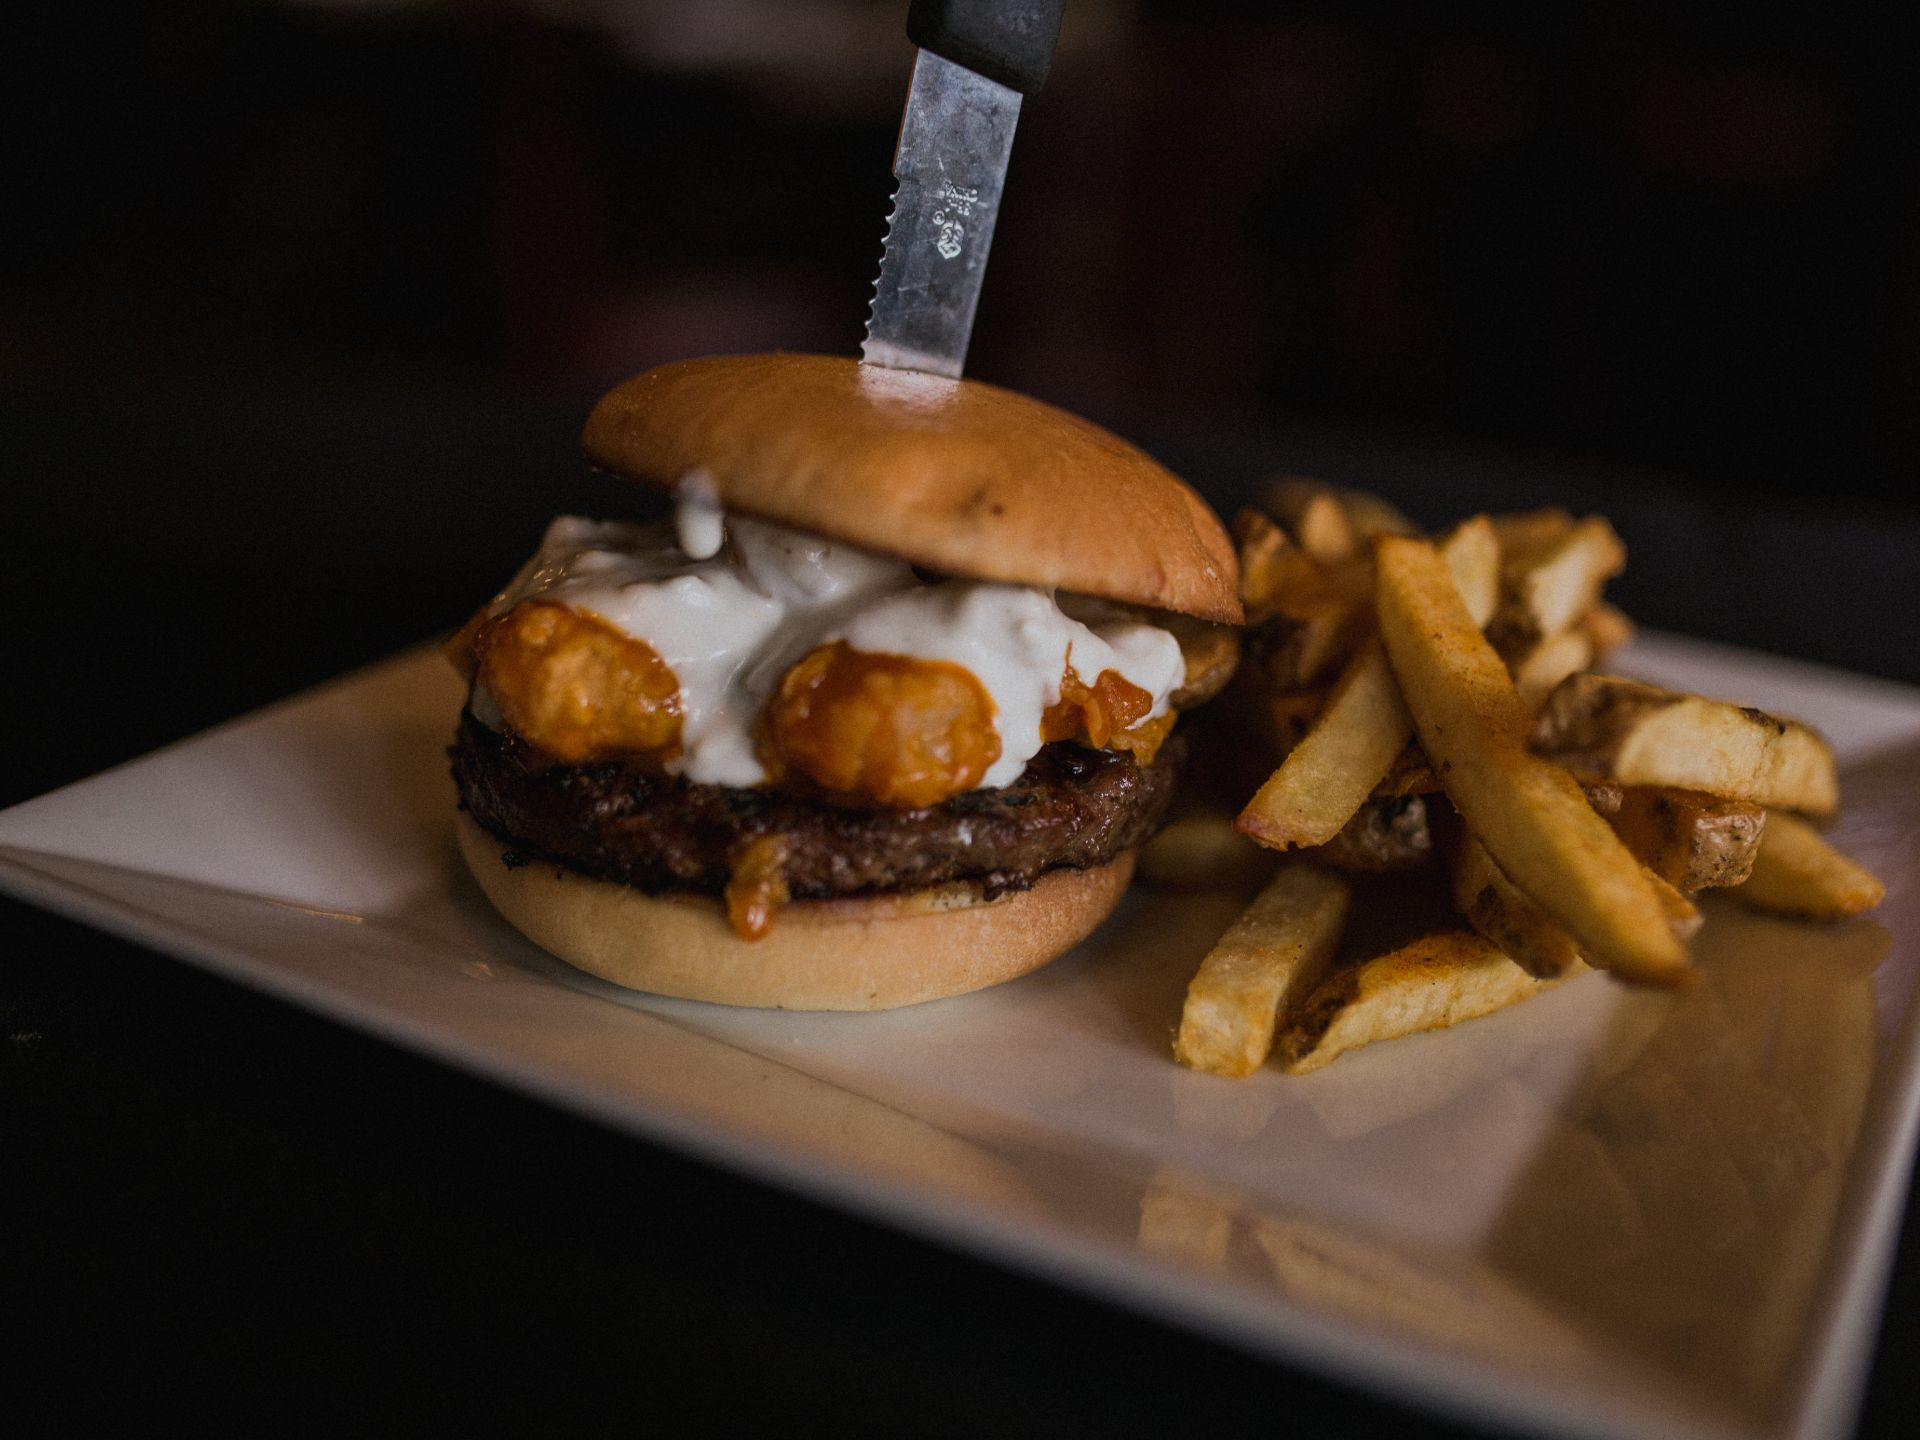 Buffalo surf and turf burger with shrimp and bleu cheese dressing with a knife through the center and French fries